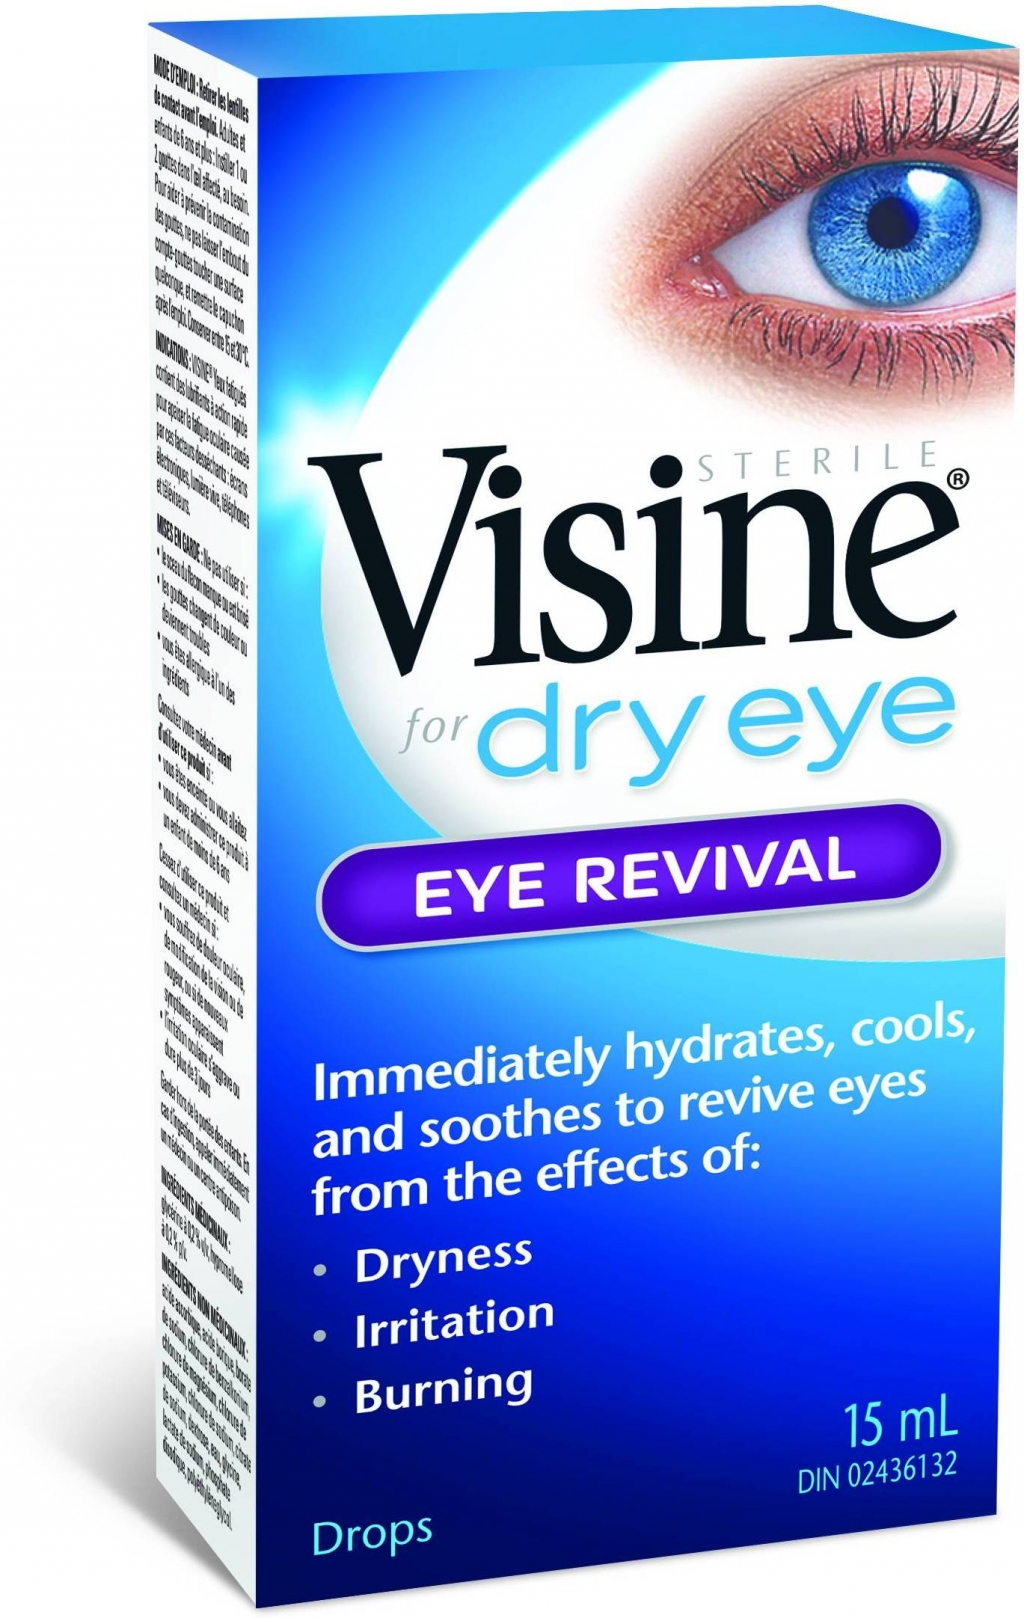 Visine for Dry Eye Eye Revival